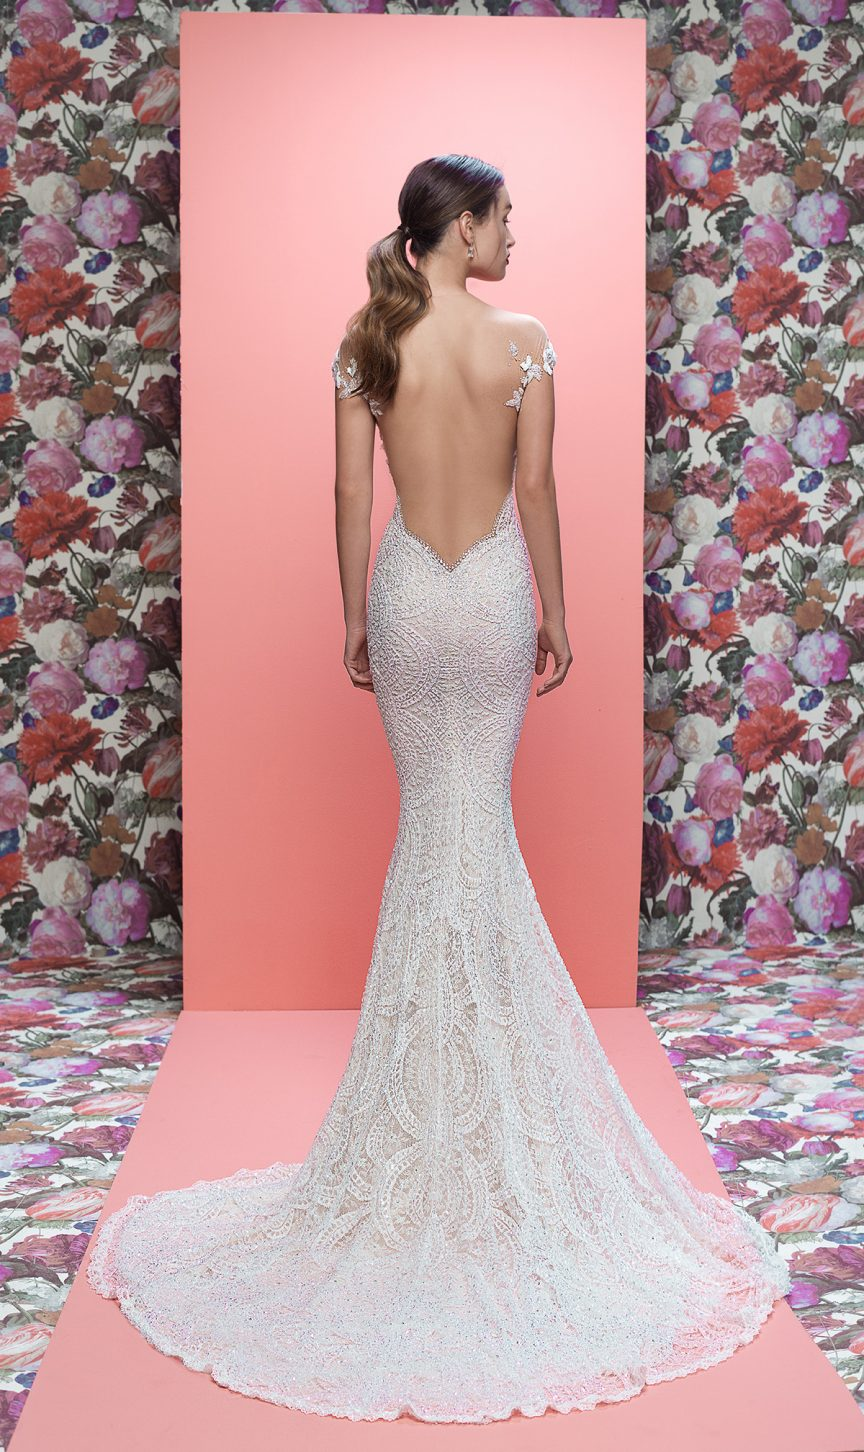 Galia-Lahav-Queen-of-Hearts-collection-Harlow-dress